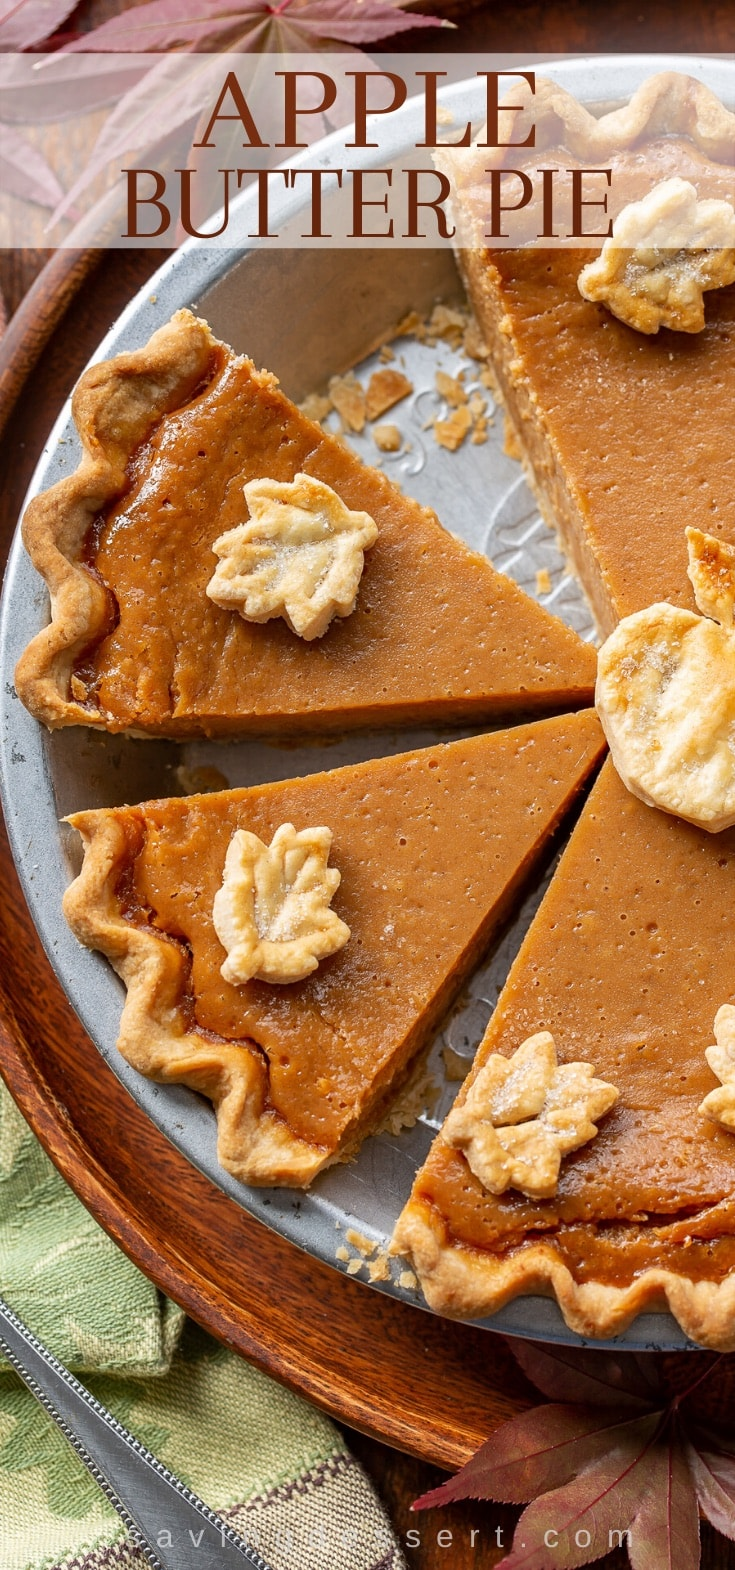 Sliced apple butter pie decorated with pastry cut-outs